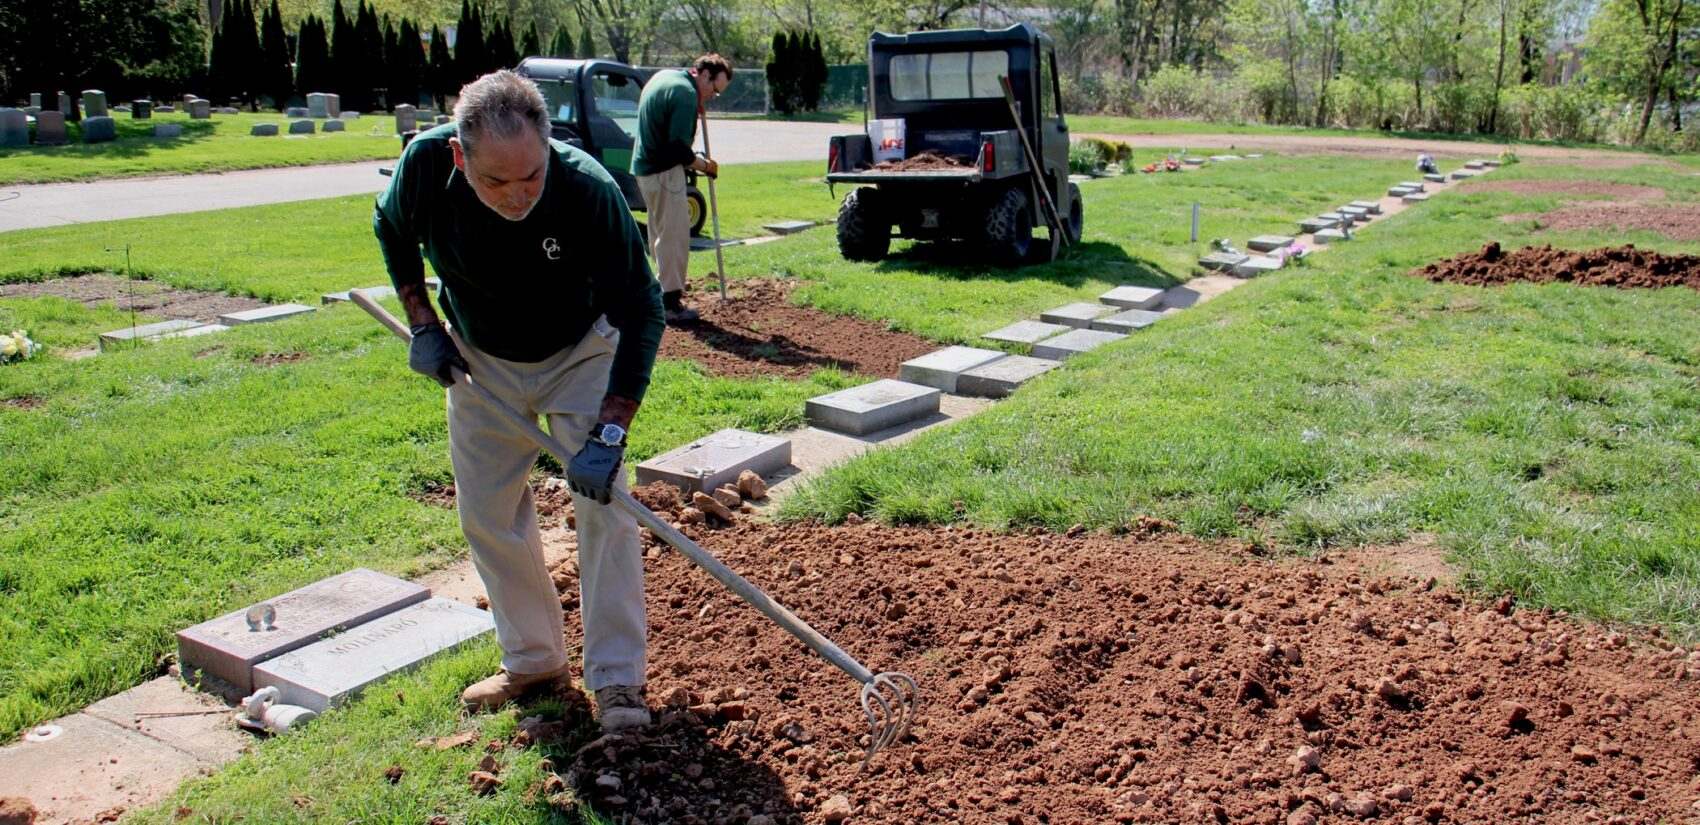 Cemetery workers Pete Sparaco (left) and Frank Mangua tend to fresh graves at Glendale Cemetery in Bloomfield, N.J. 'It's like a war zone,' Sparaco said of the many recent burials. (Emma Lee/WHYY)